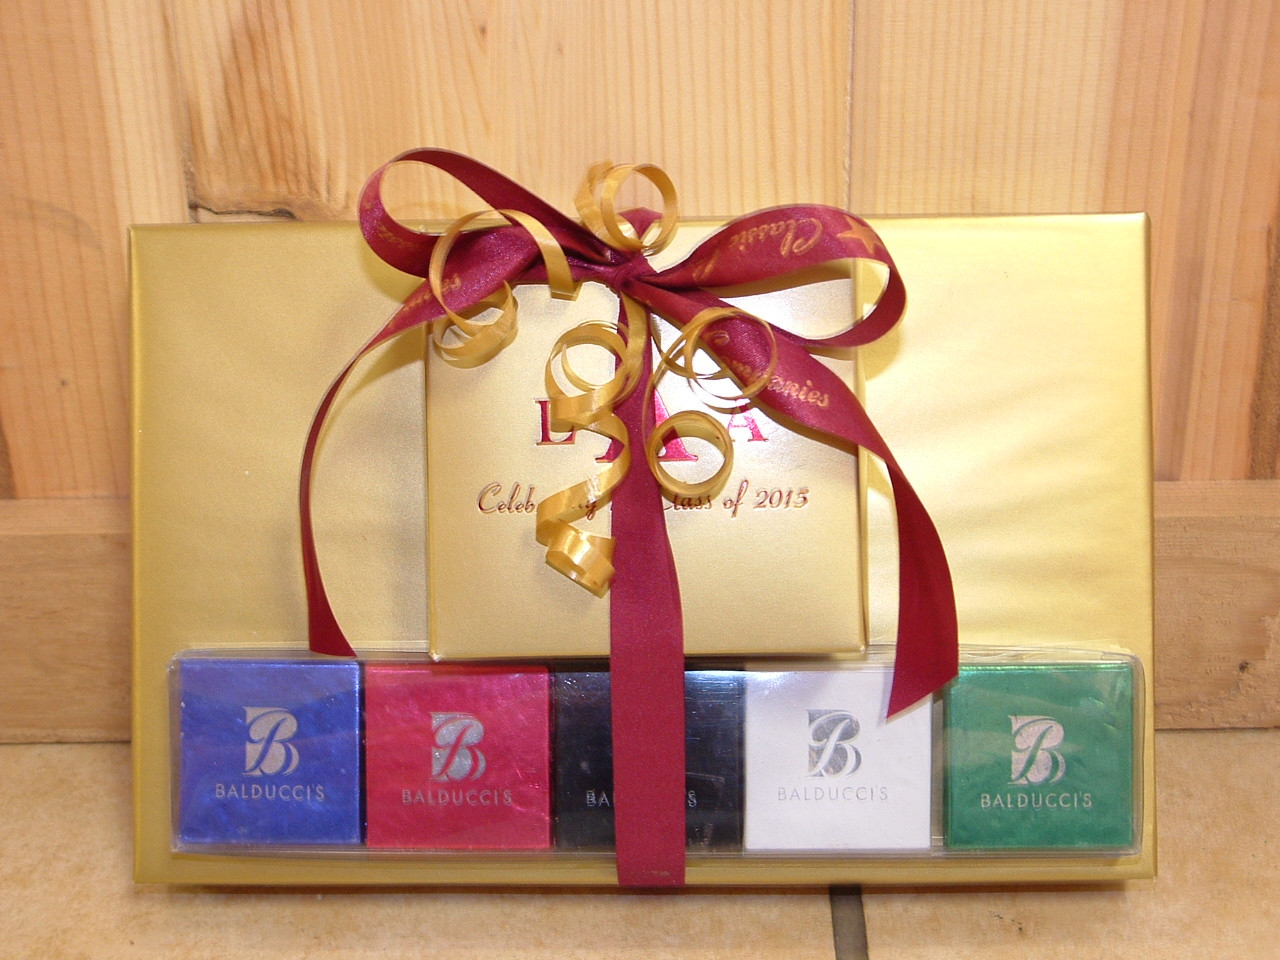 Best ideas about Company Holiday Gift Ideas . Save or Pin Great Corporate Holiday Gift Ideas of Chocolate and or Now.